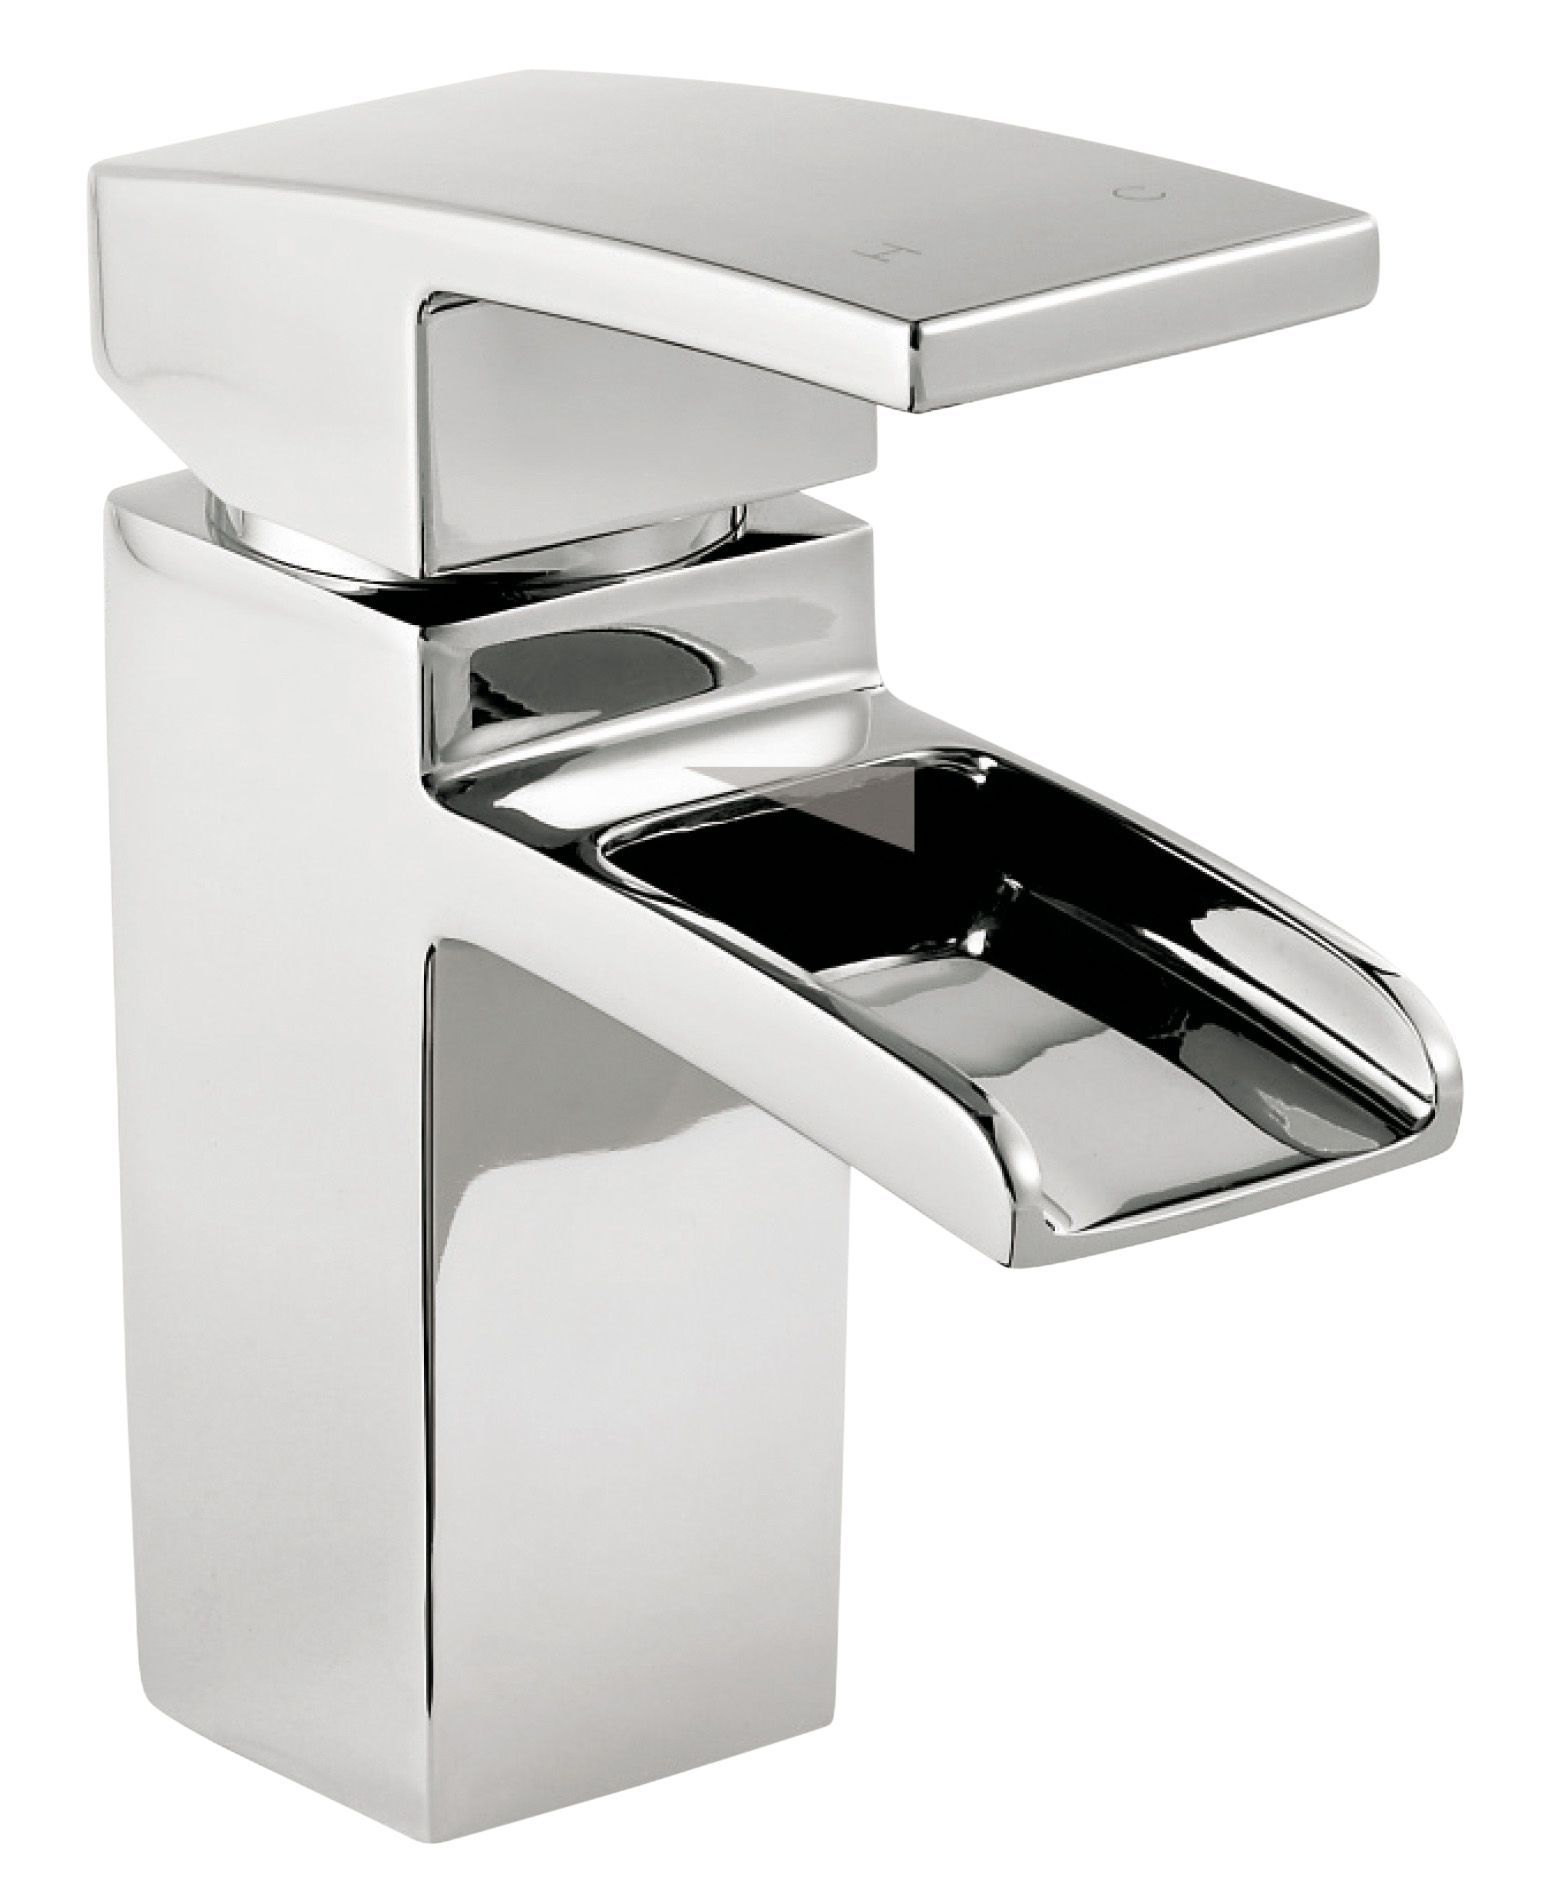 Bathroom Sinks B&Q cooke & lewis cascade 1 lever basin mixer tap | departments | diy